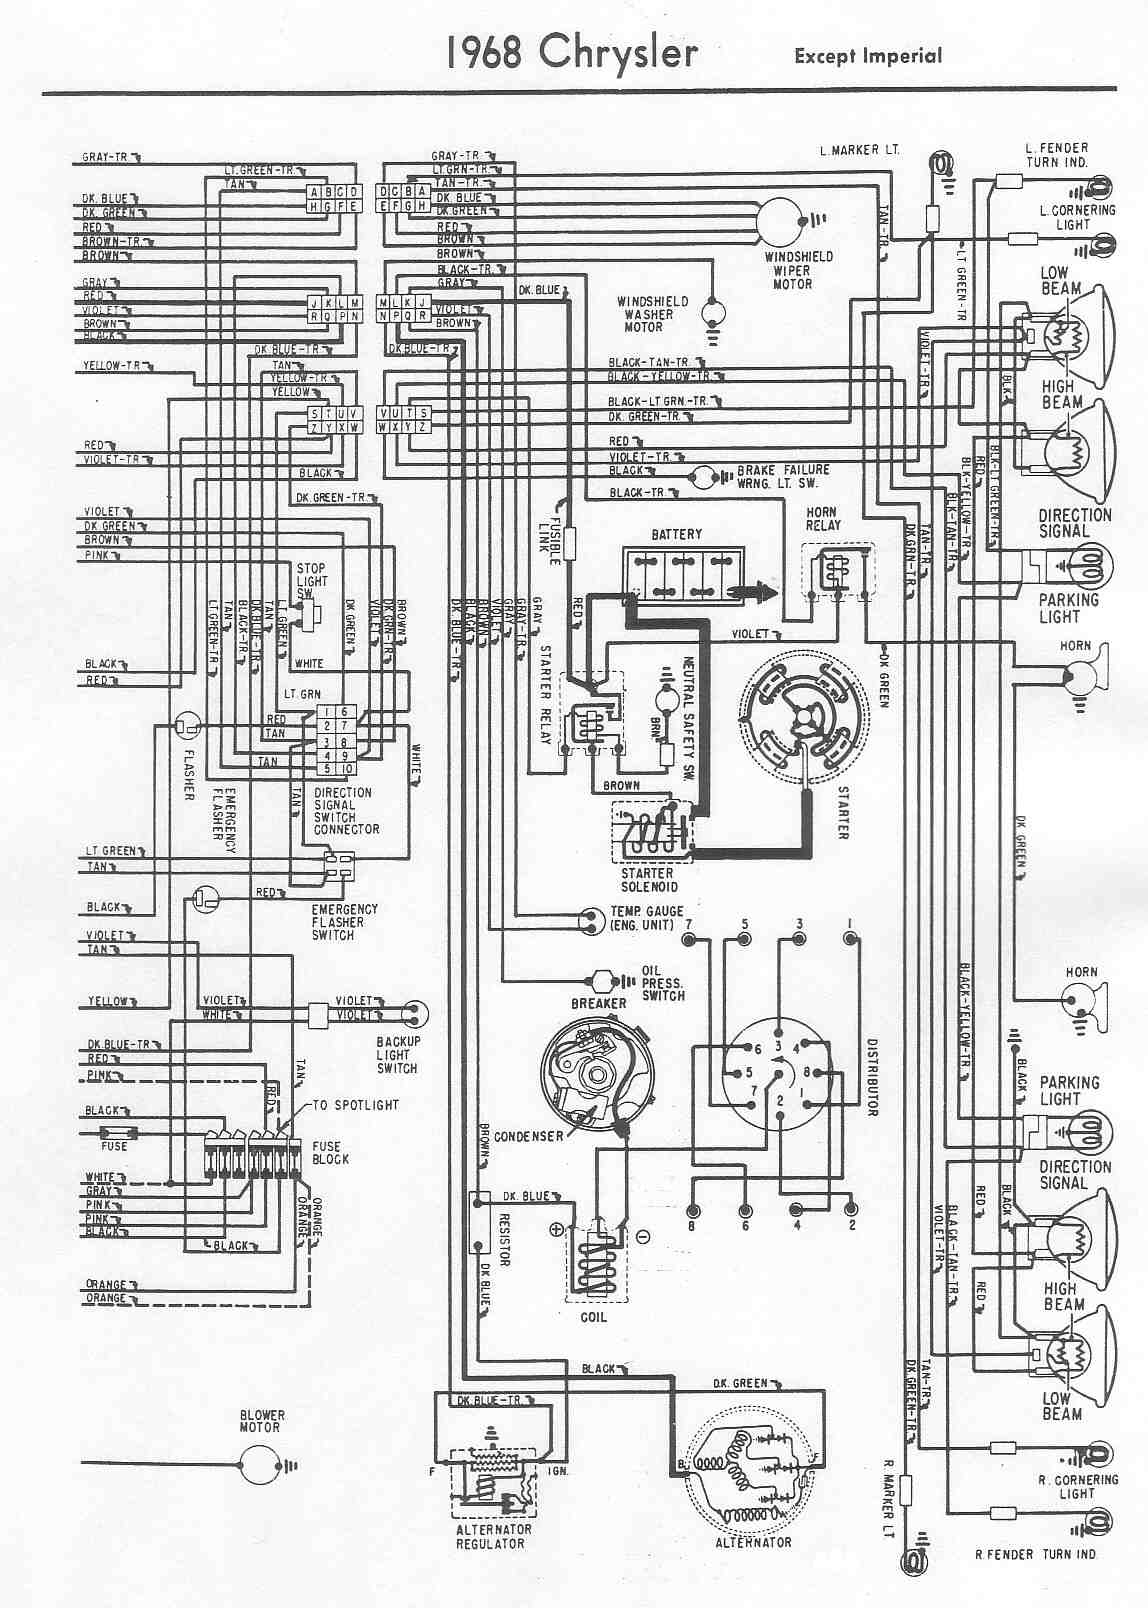 1965 dodge coronet dash wiring diagram 1965 dodge coronet chrysler 300 wiring schematics automotive wiring symbols [ 1148 x 1608 Pixel ]